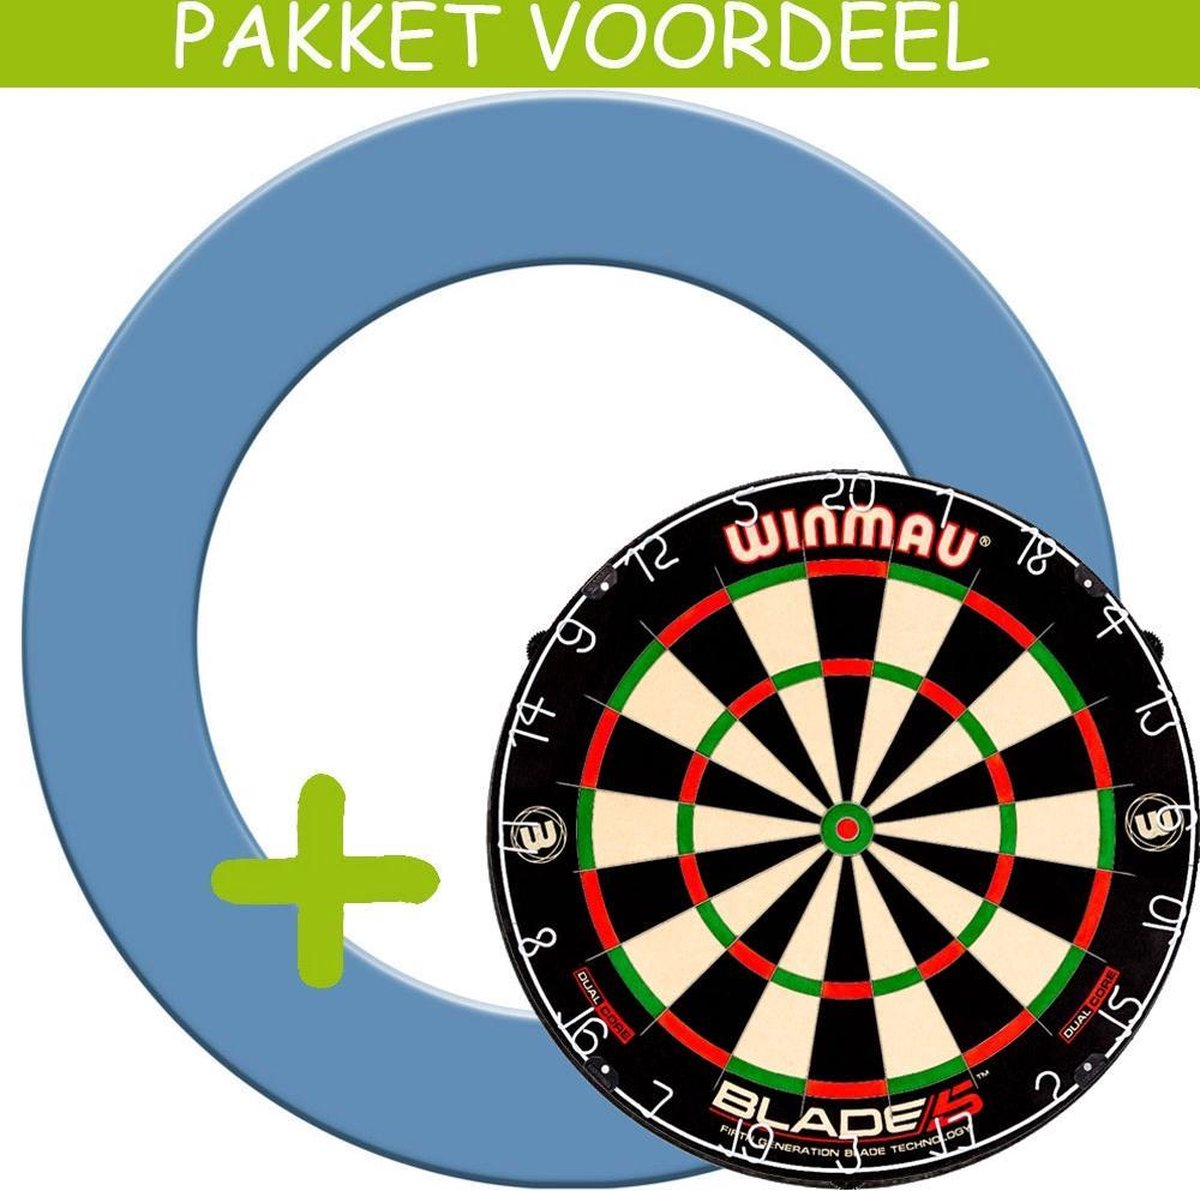 Dartbord Surround VoordeelPakket - Dual Core - EVA Surround-- (Aqua)